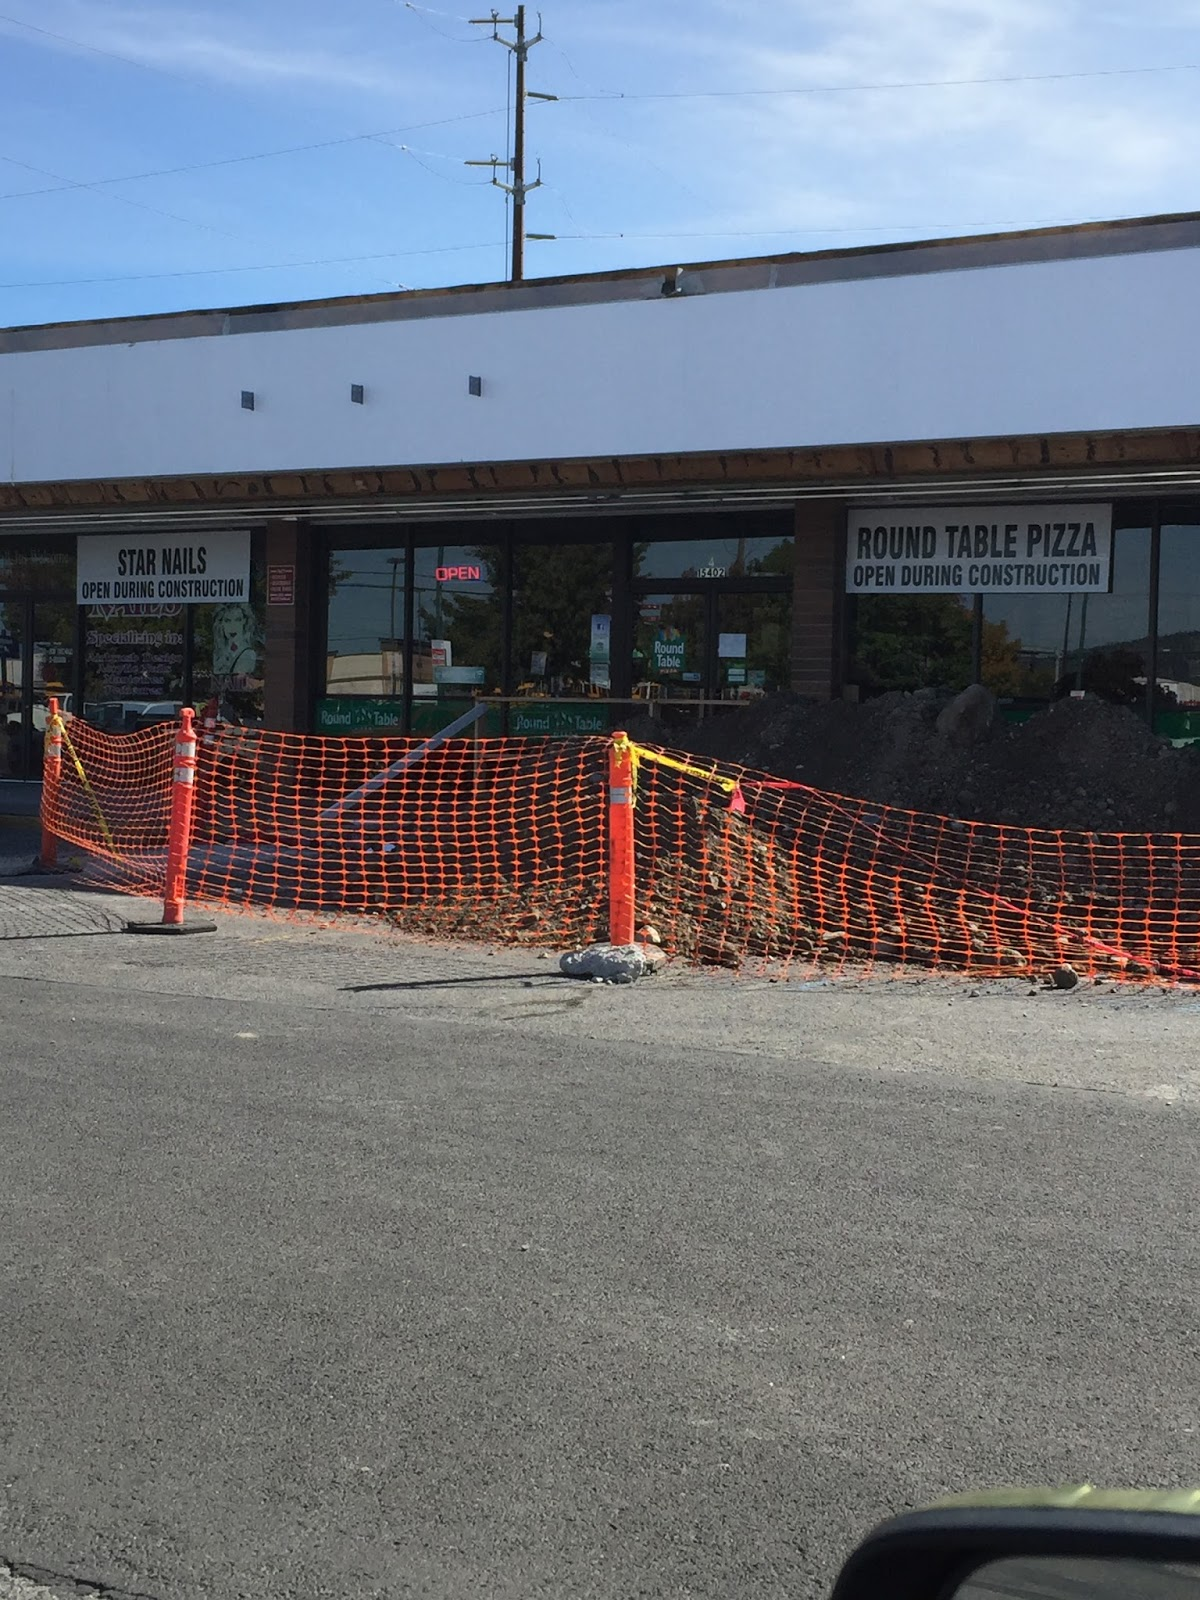 Home depot liberty lake wa - But As Of Now Just Construction Is Happening At The Shopping Center However It Is Important To Note All Businesses In The Center Today Remain Open For